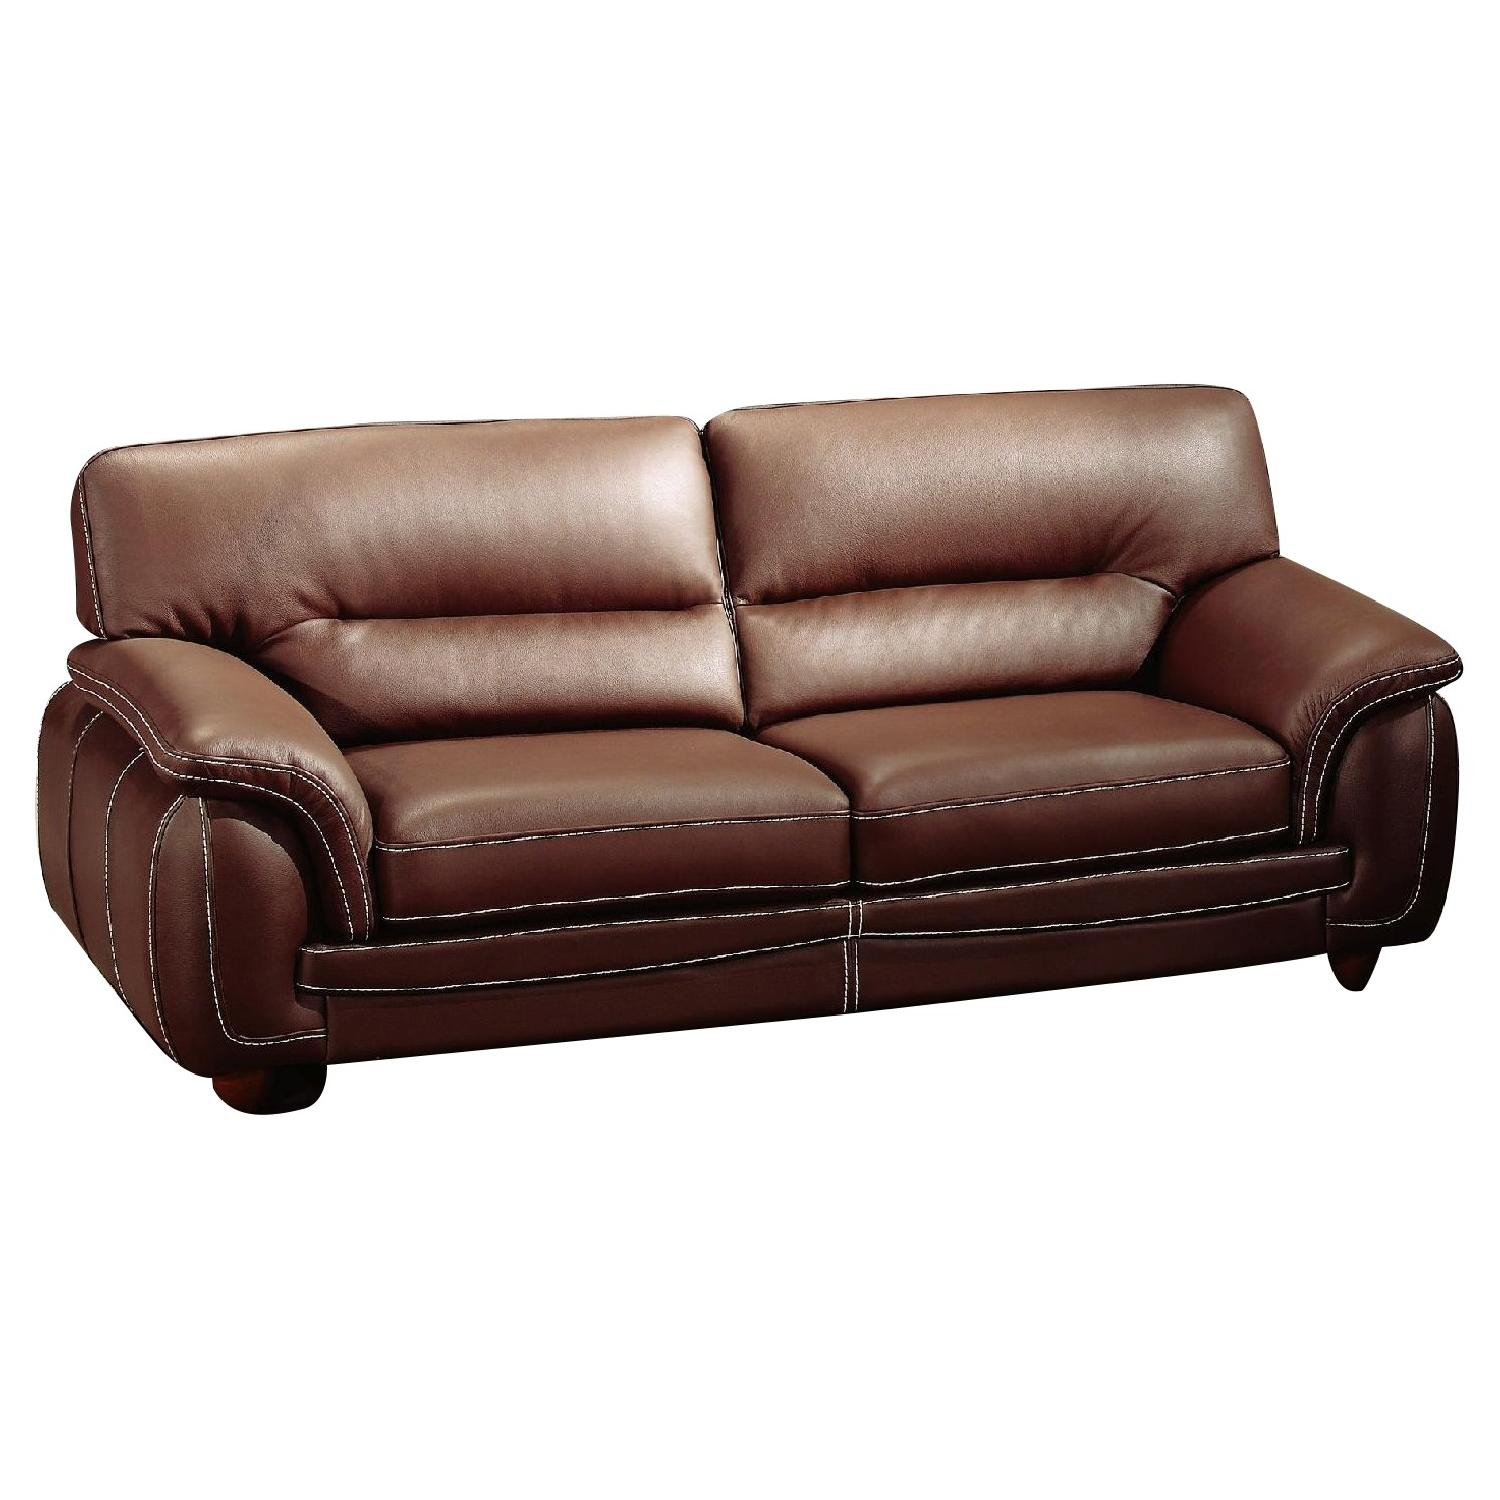 Modern Sofa in Brown Top Grain Leather w/ High Density Foam & White Stitching